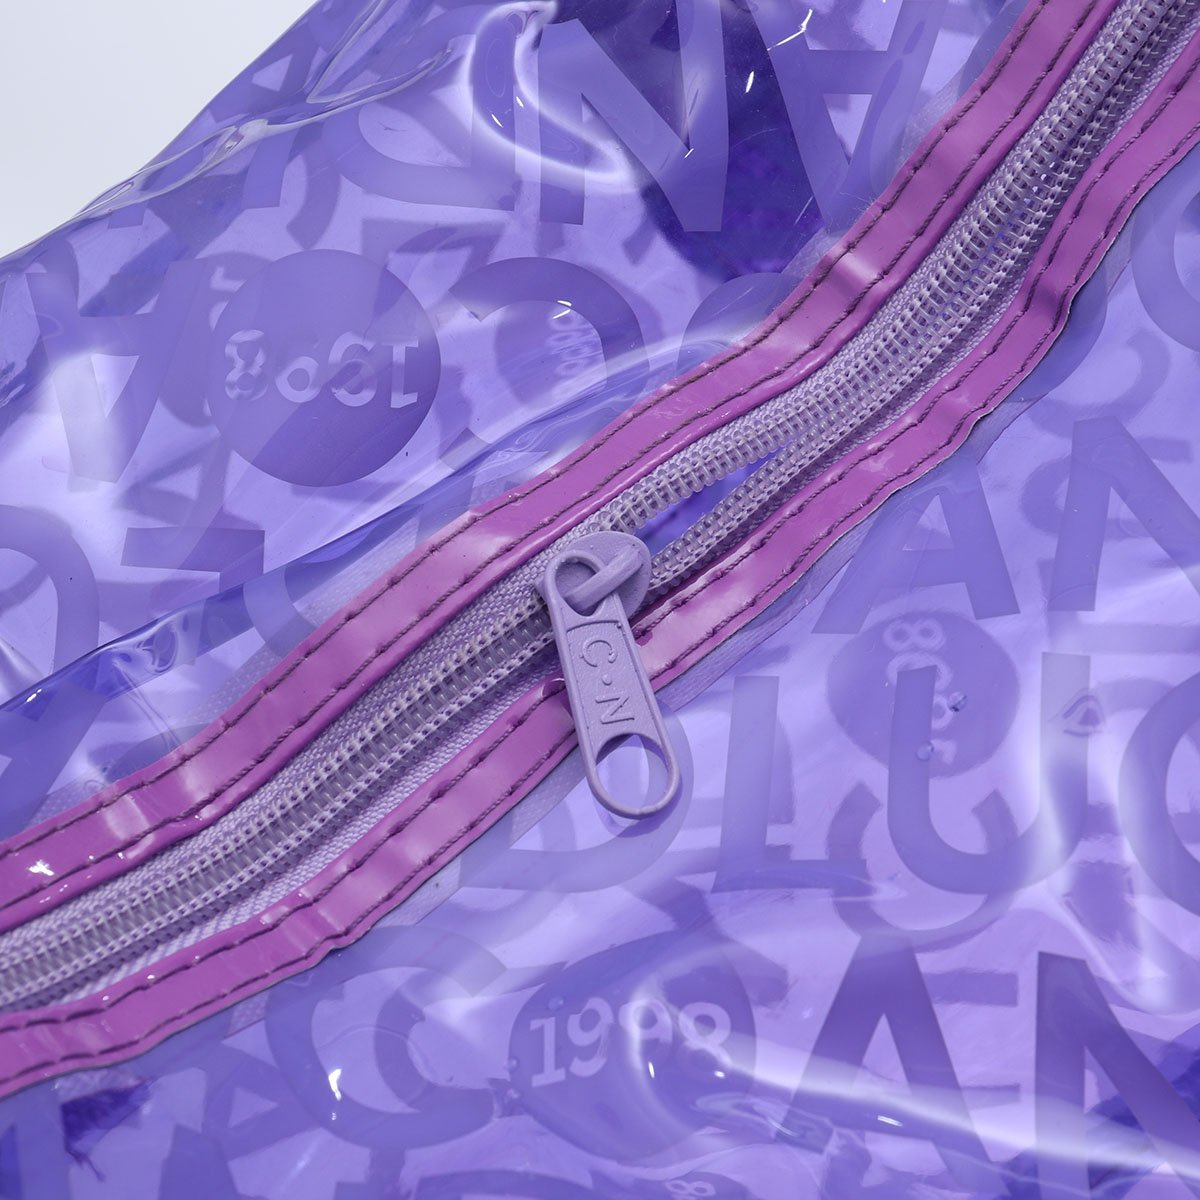 VORCOOL Jelly Bag Confectionery Color Swimming Special Bag Waterproof Portable Letter Handbag for Ladies Purple